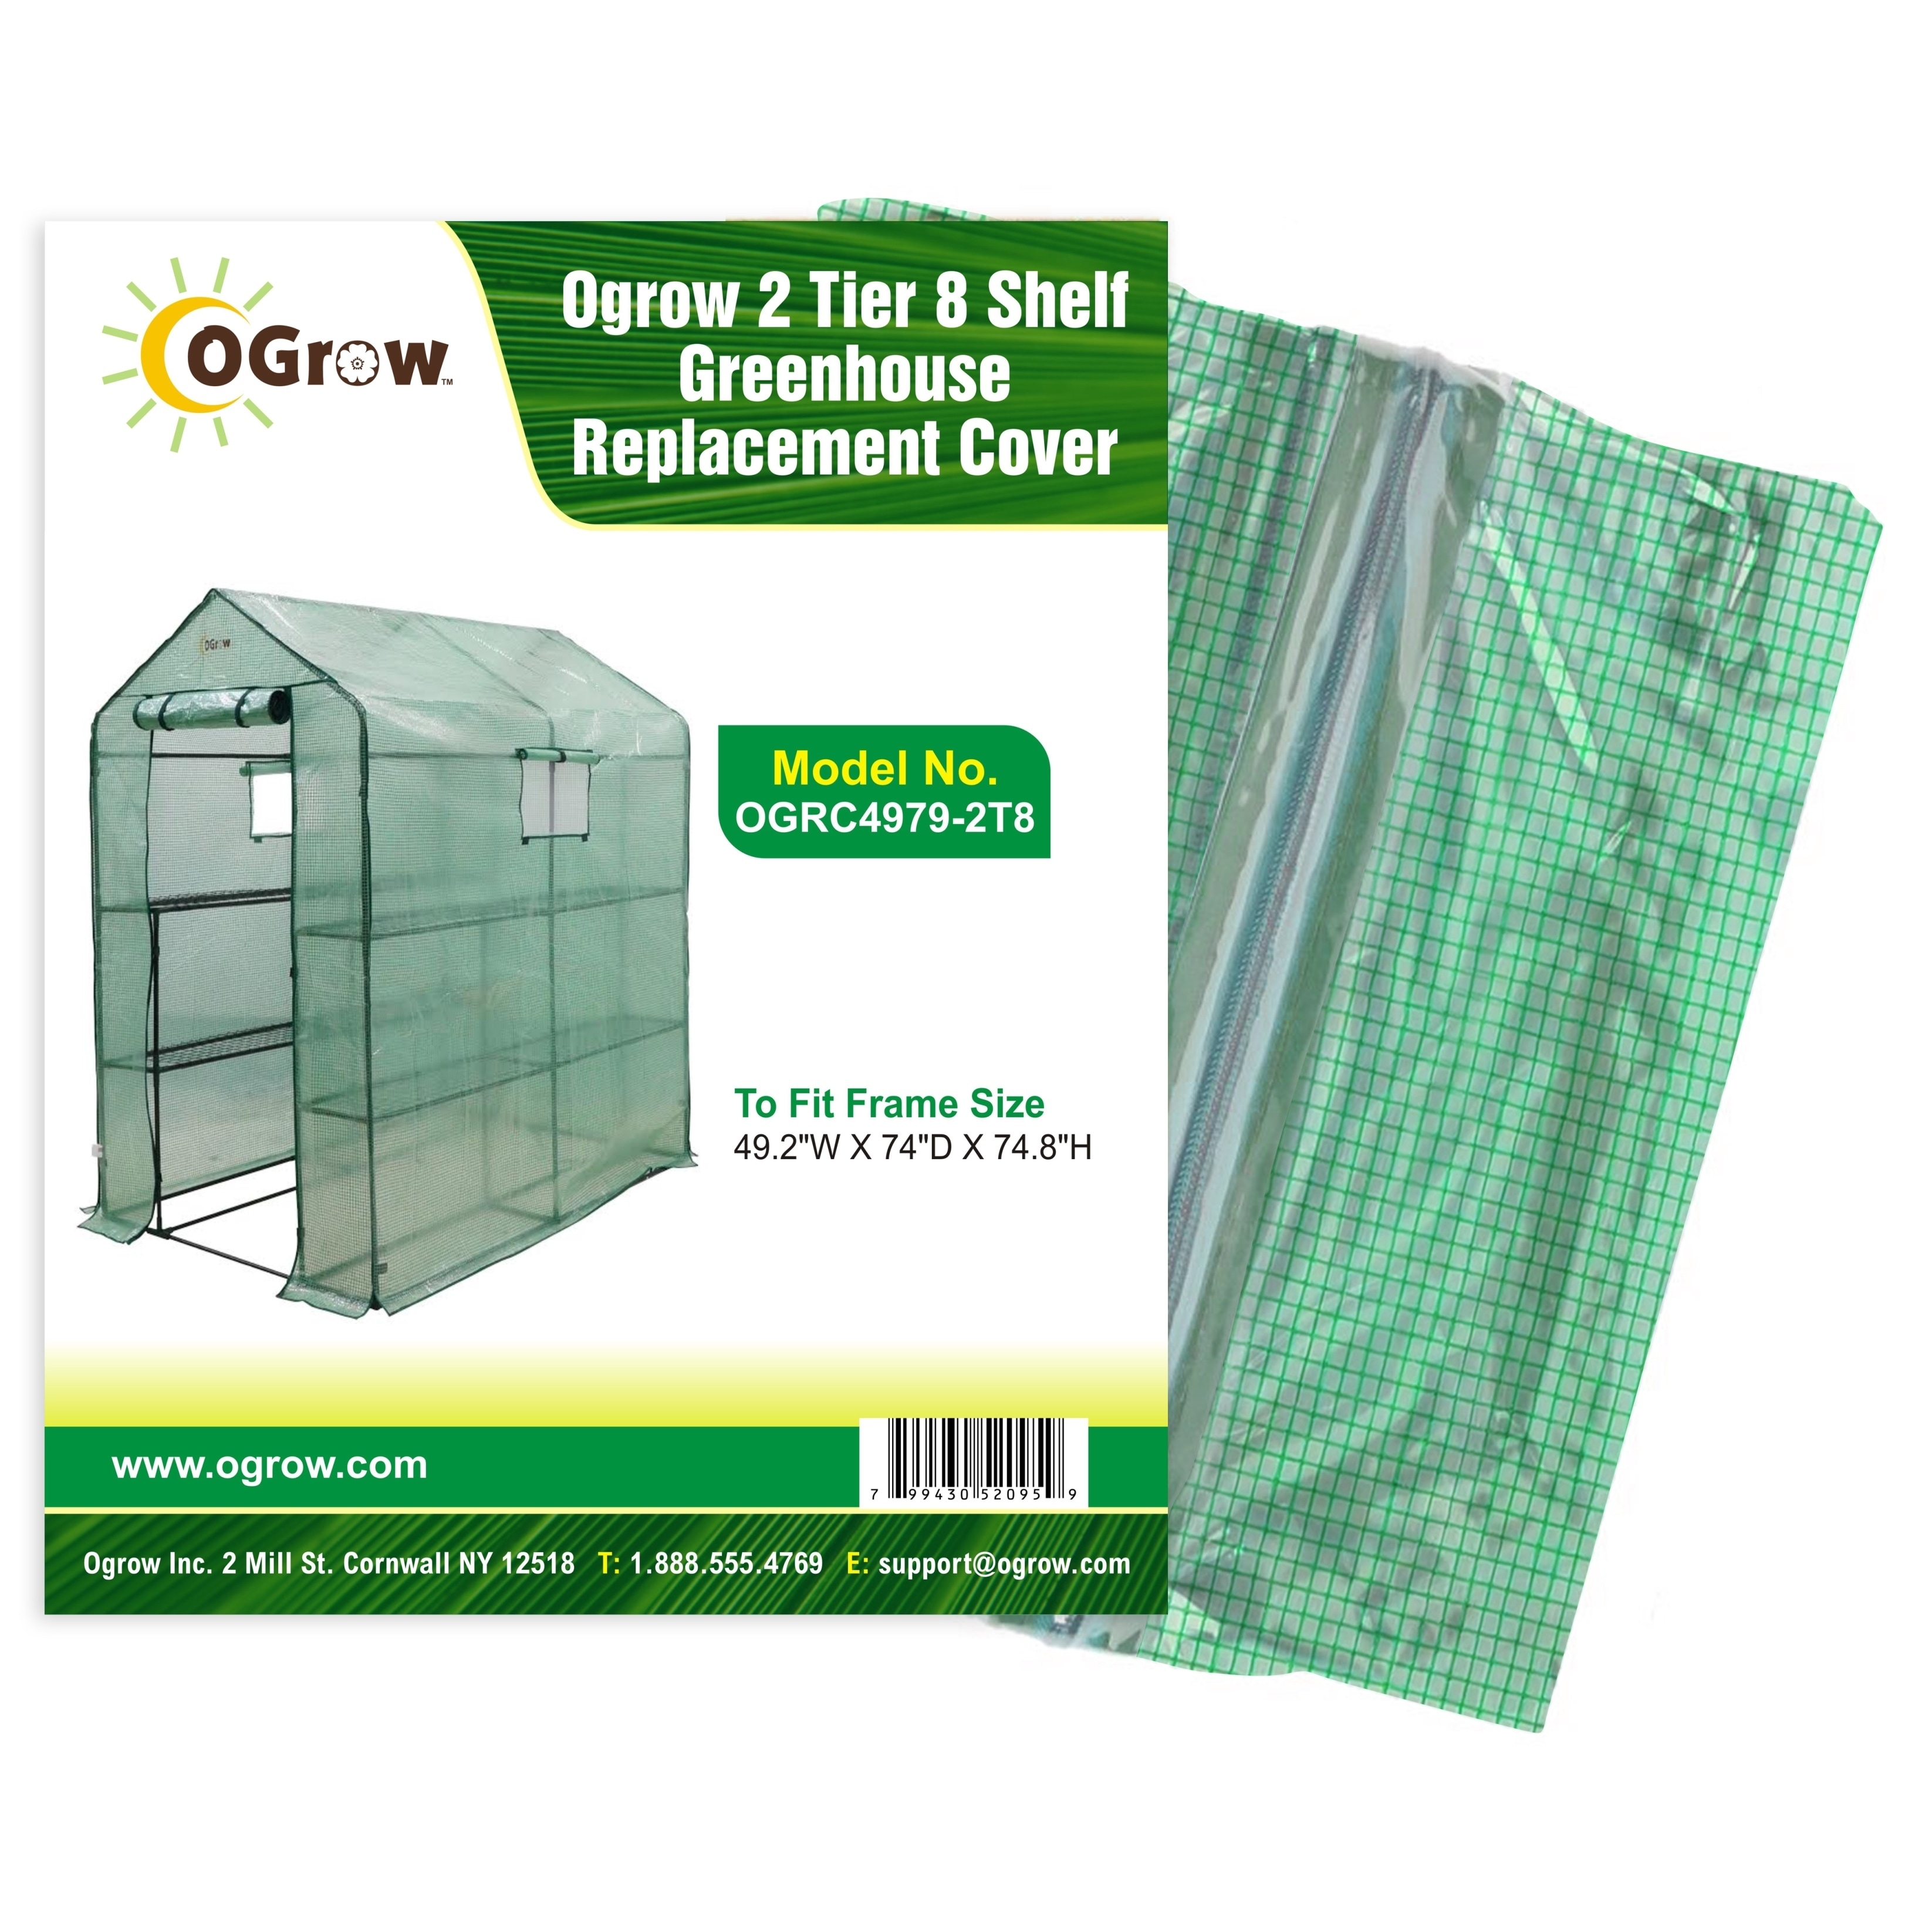 Selections 3 Tier Mini Greenhouse Re-inforced Replacement Cover